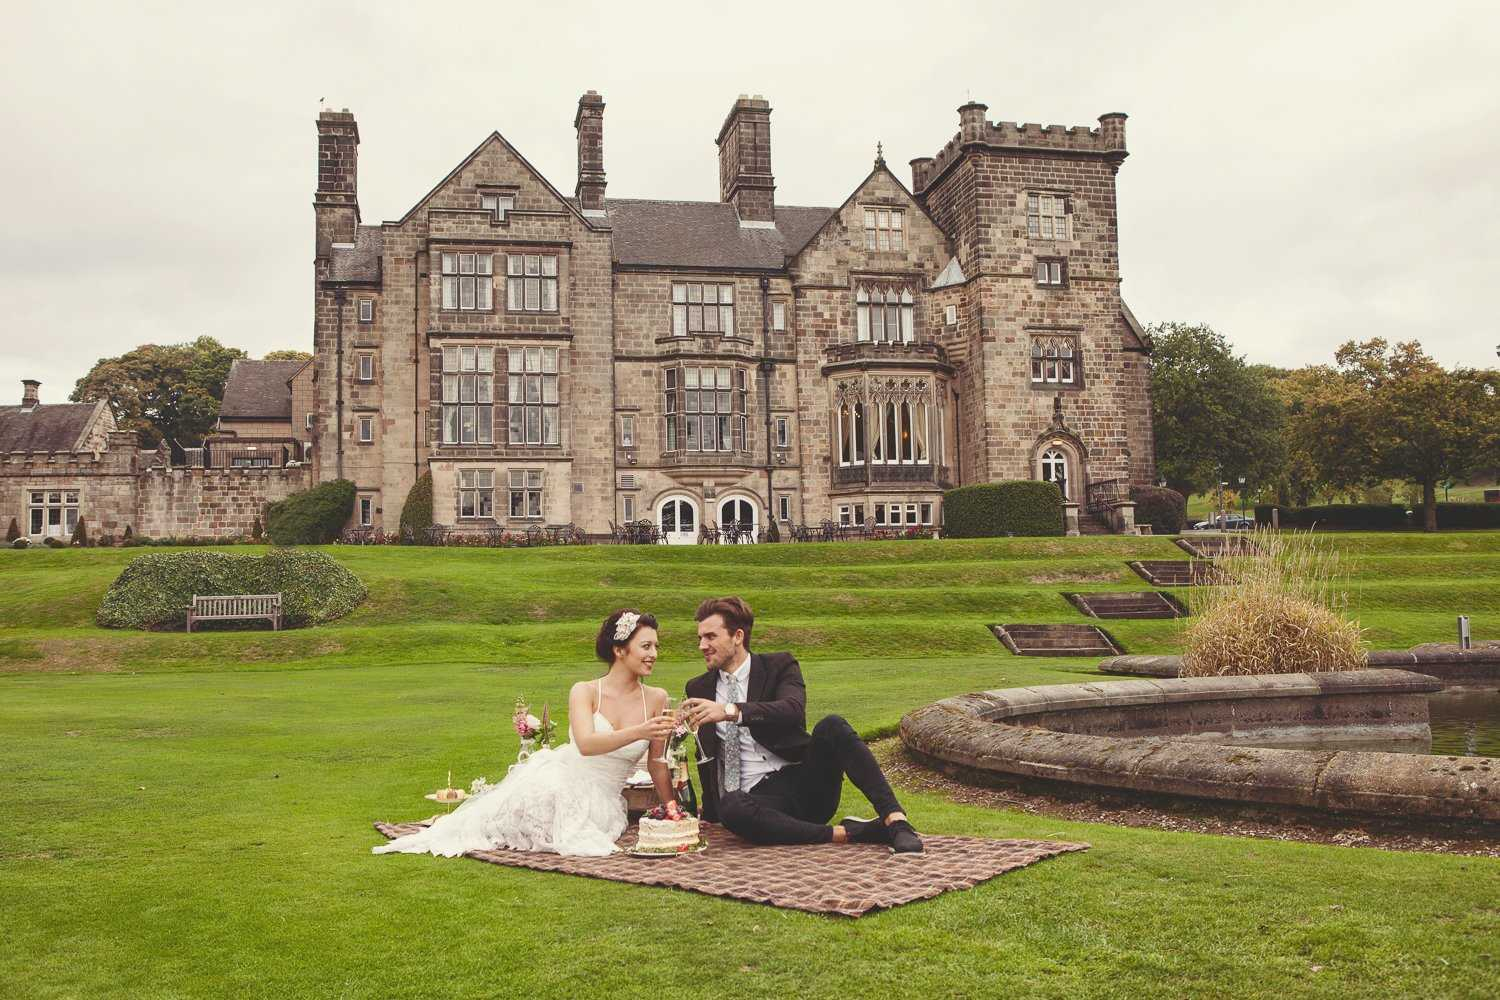 Marriott Breadsall Priory Hotel & Country Club